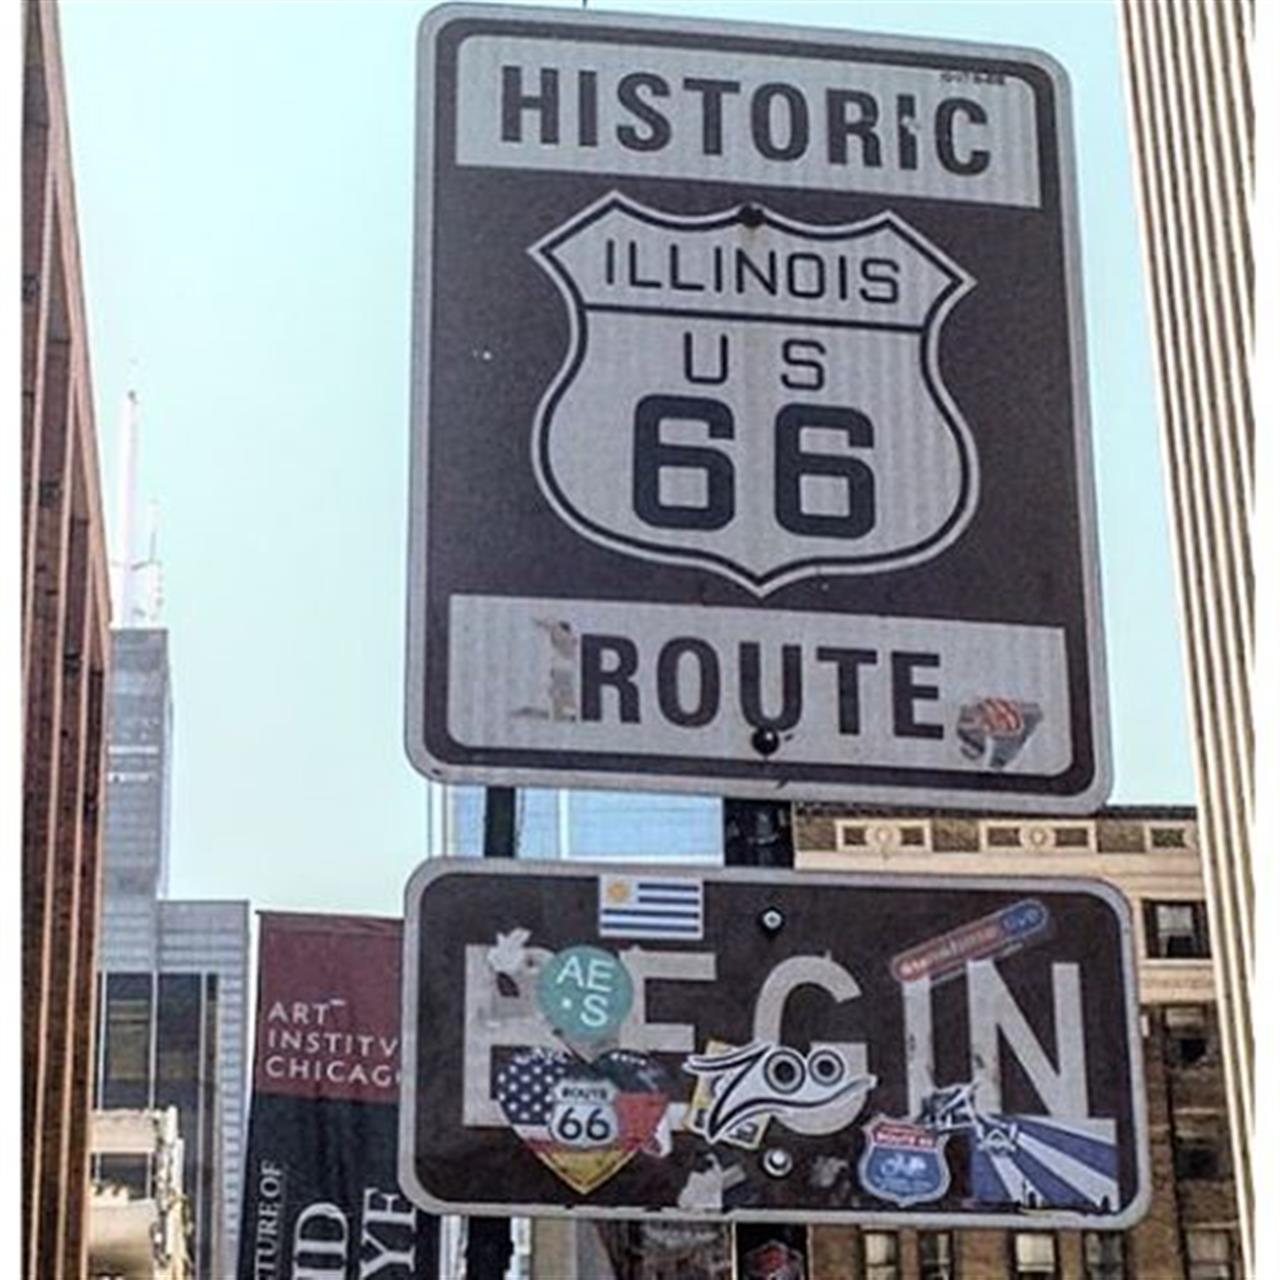 Get your kicks #route66 #chicago #route66signs #leadingrelocal